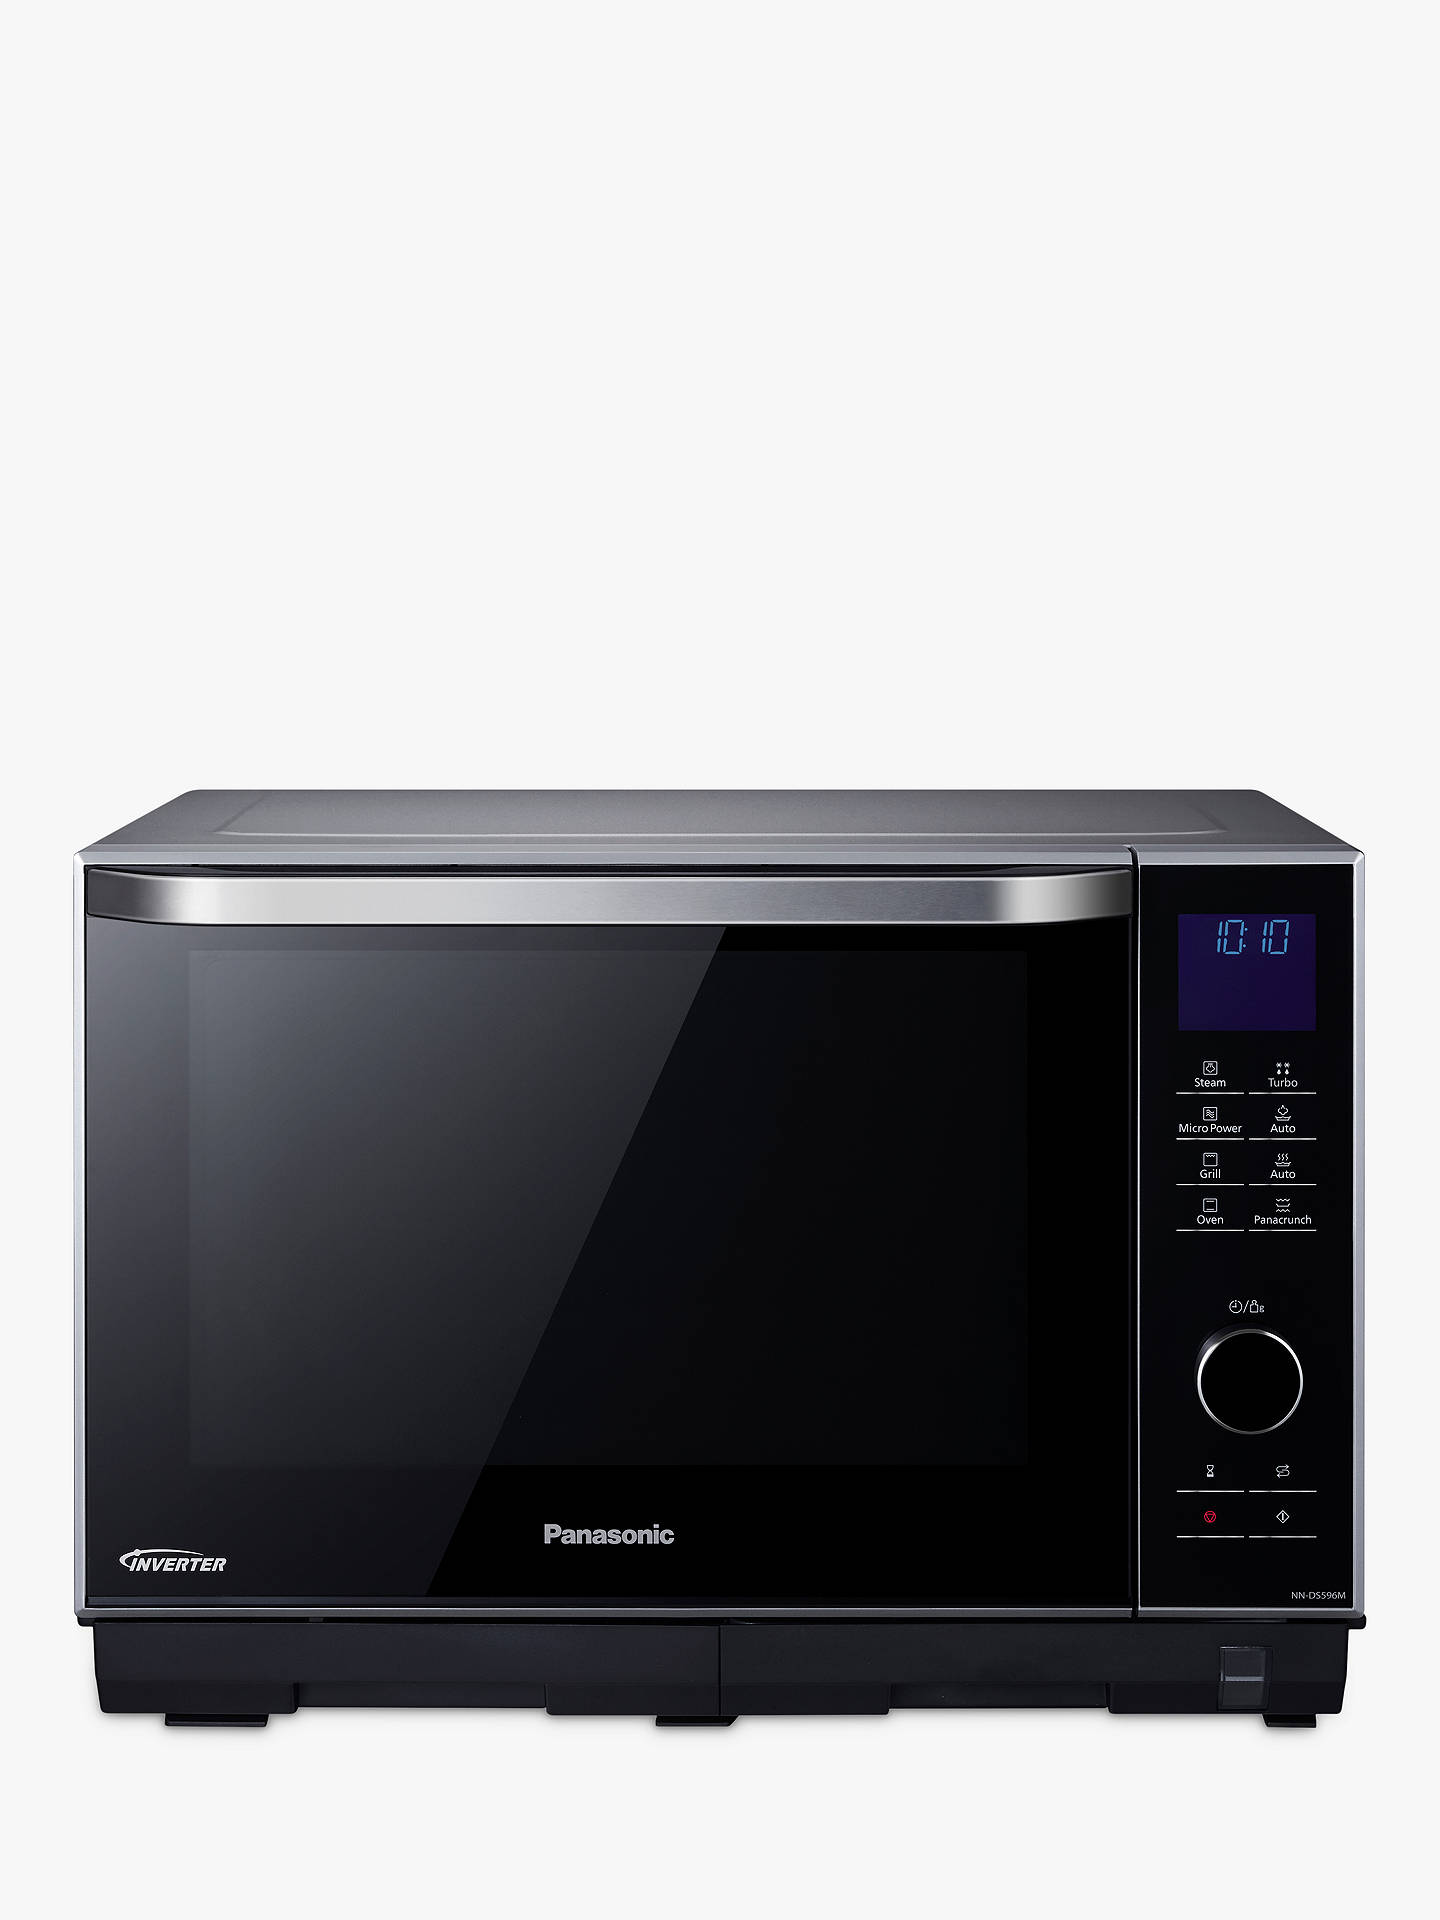 Panasonic Nn Ds596bbpq Freestanding 4 In 1 Steam Combination Microwave Oven With